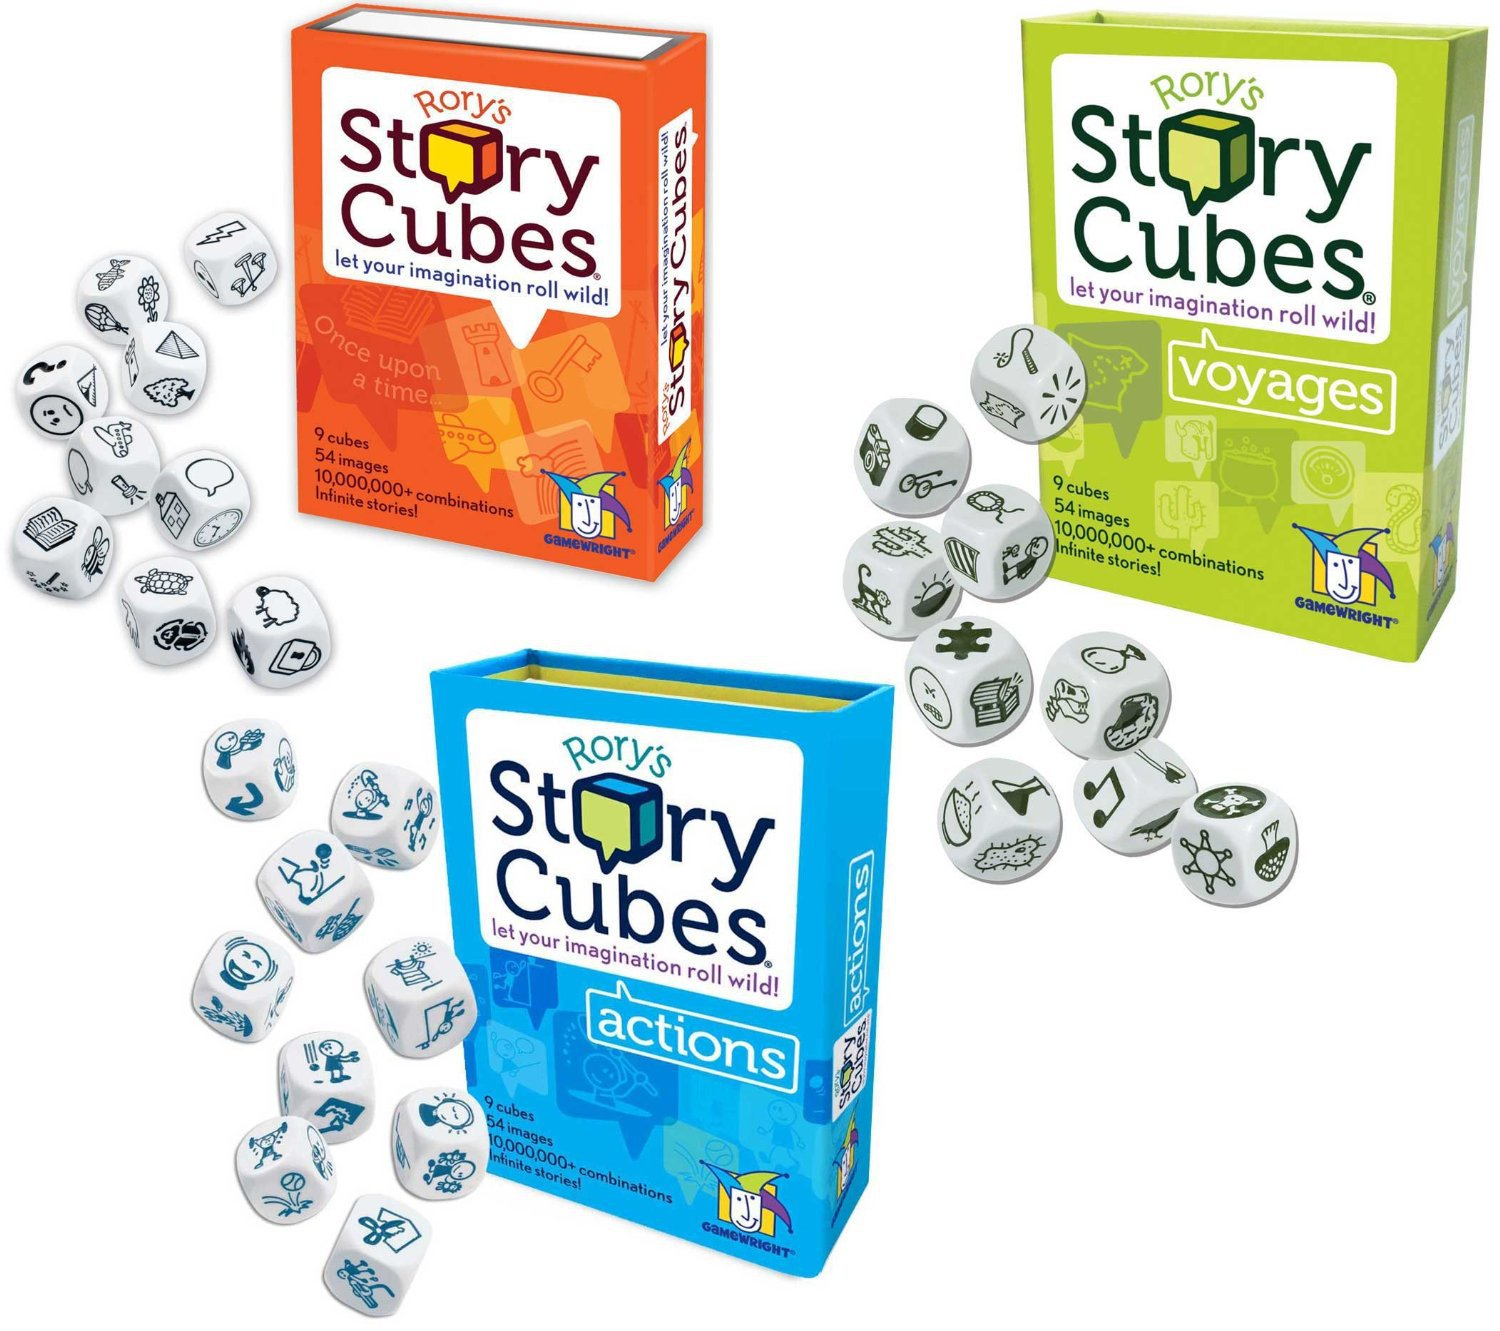 Original Rory's Story Cube Gamewright Actions Voyages Complete Set